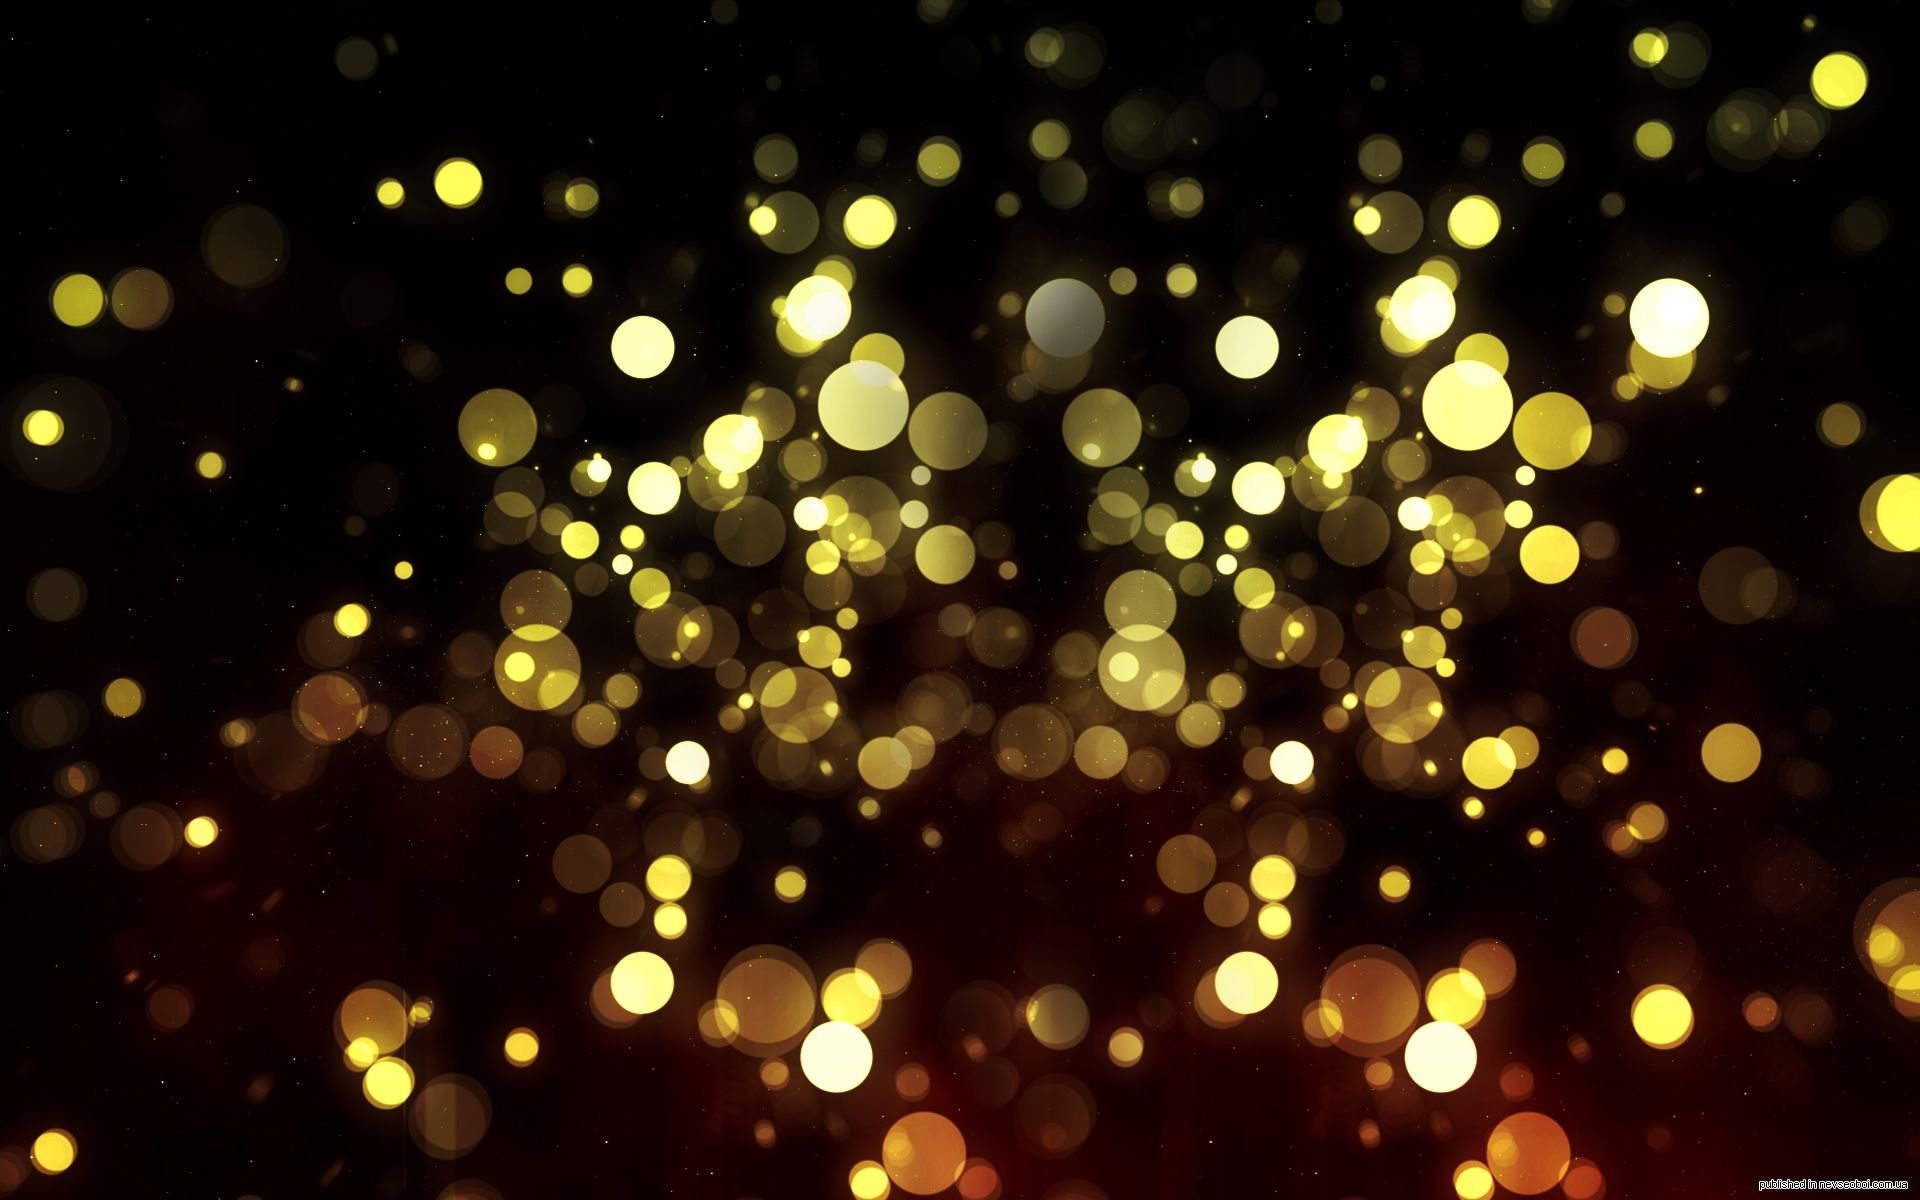 New background images environment free wallpaper - Hd Photos Black And Gold Imagenes 1920x1200 Hd 107455